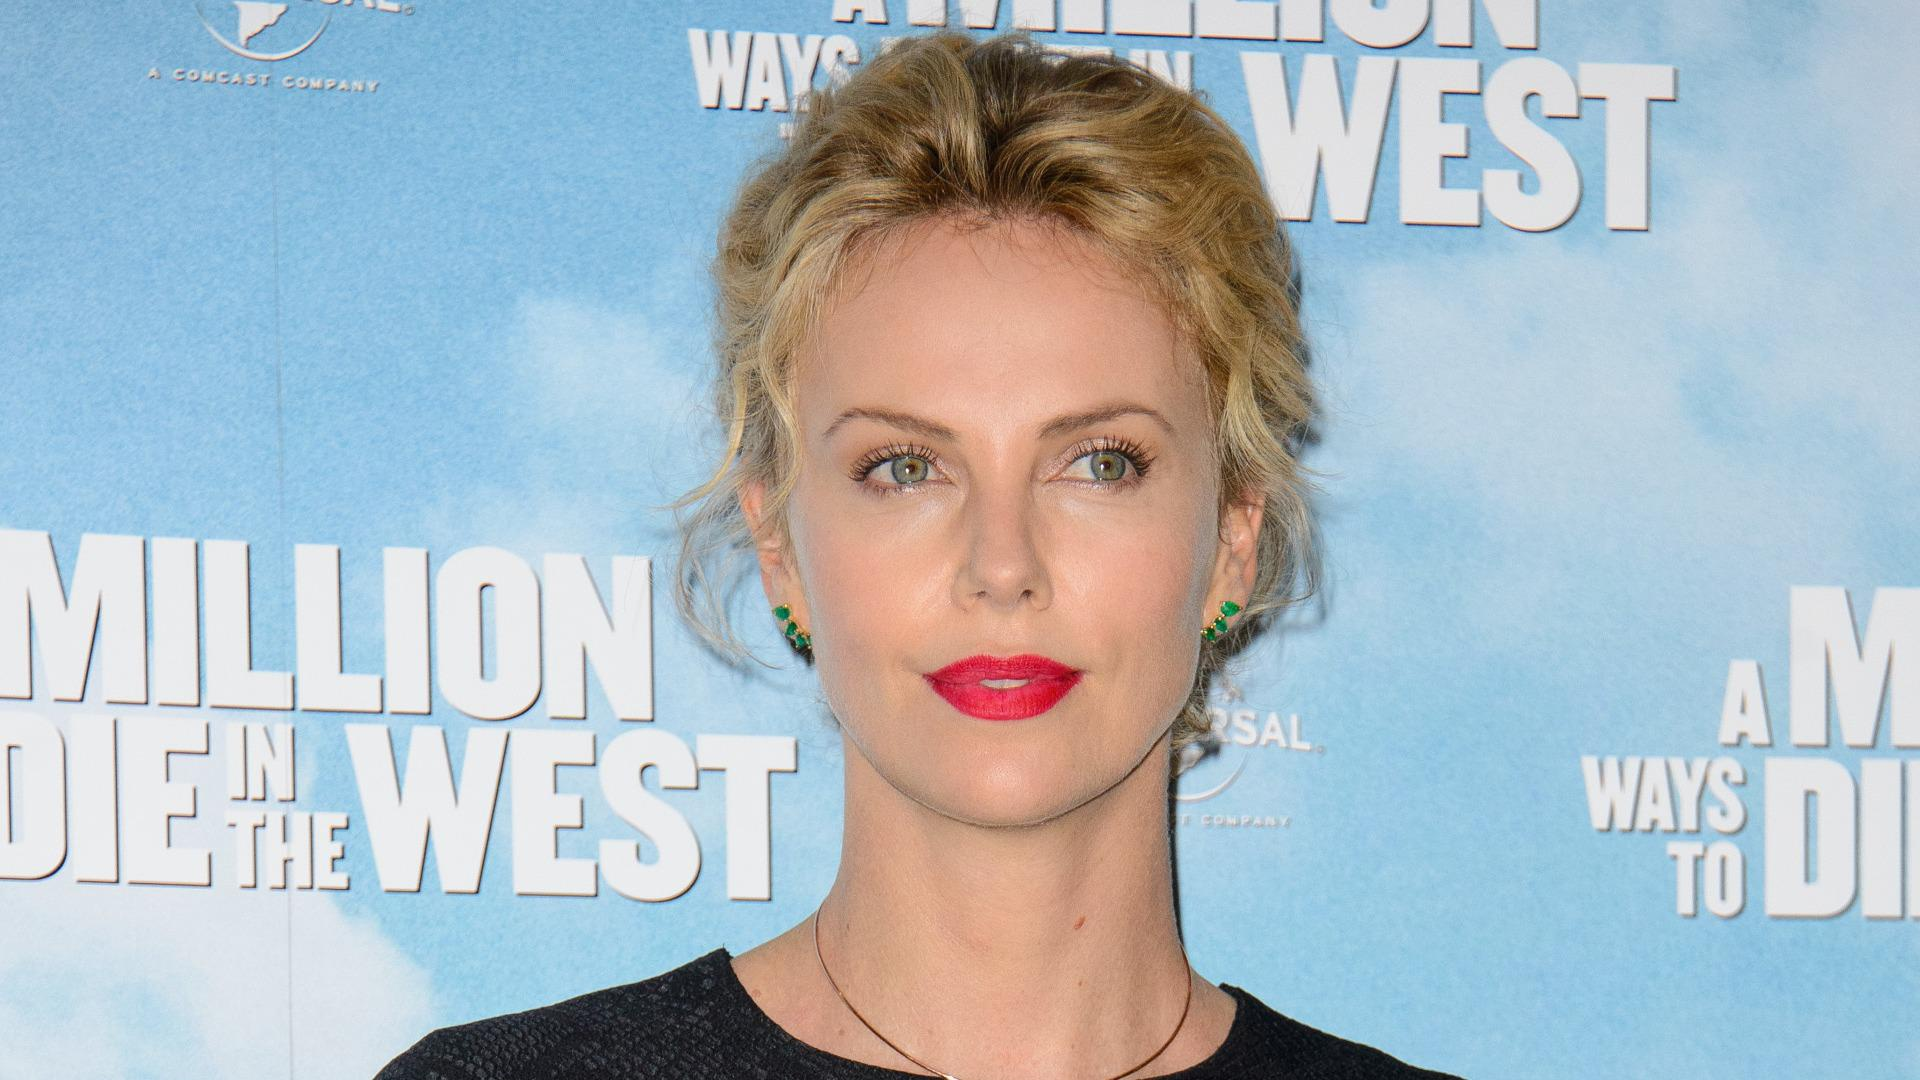 Charlize Theron wants Tia Mowry out of her SoulCycle class